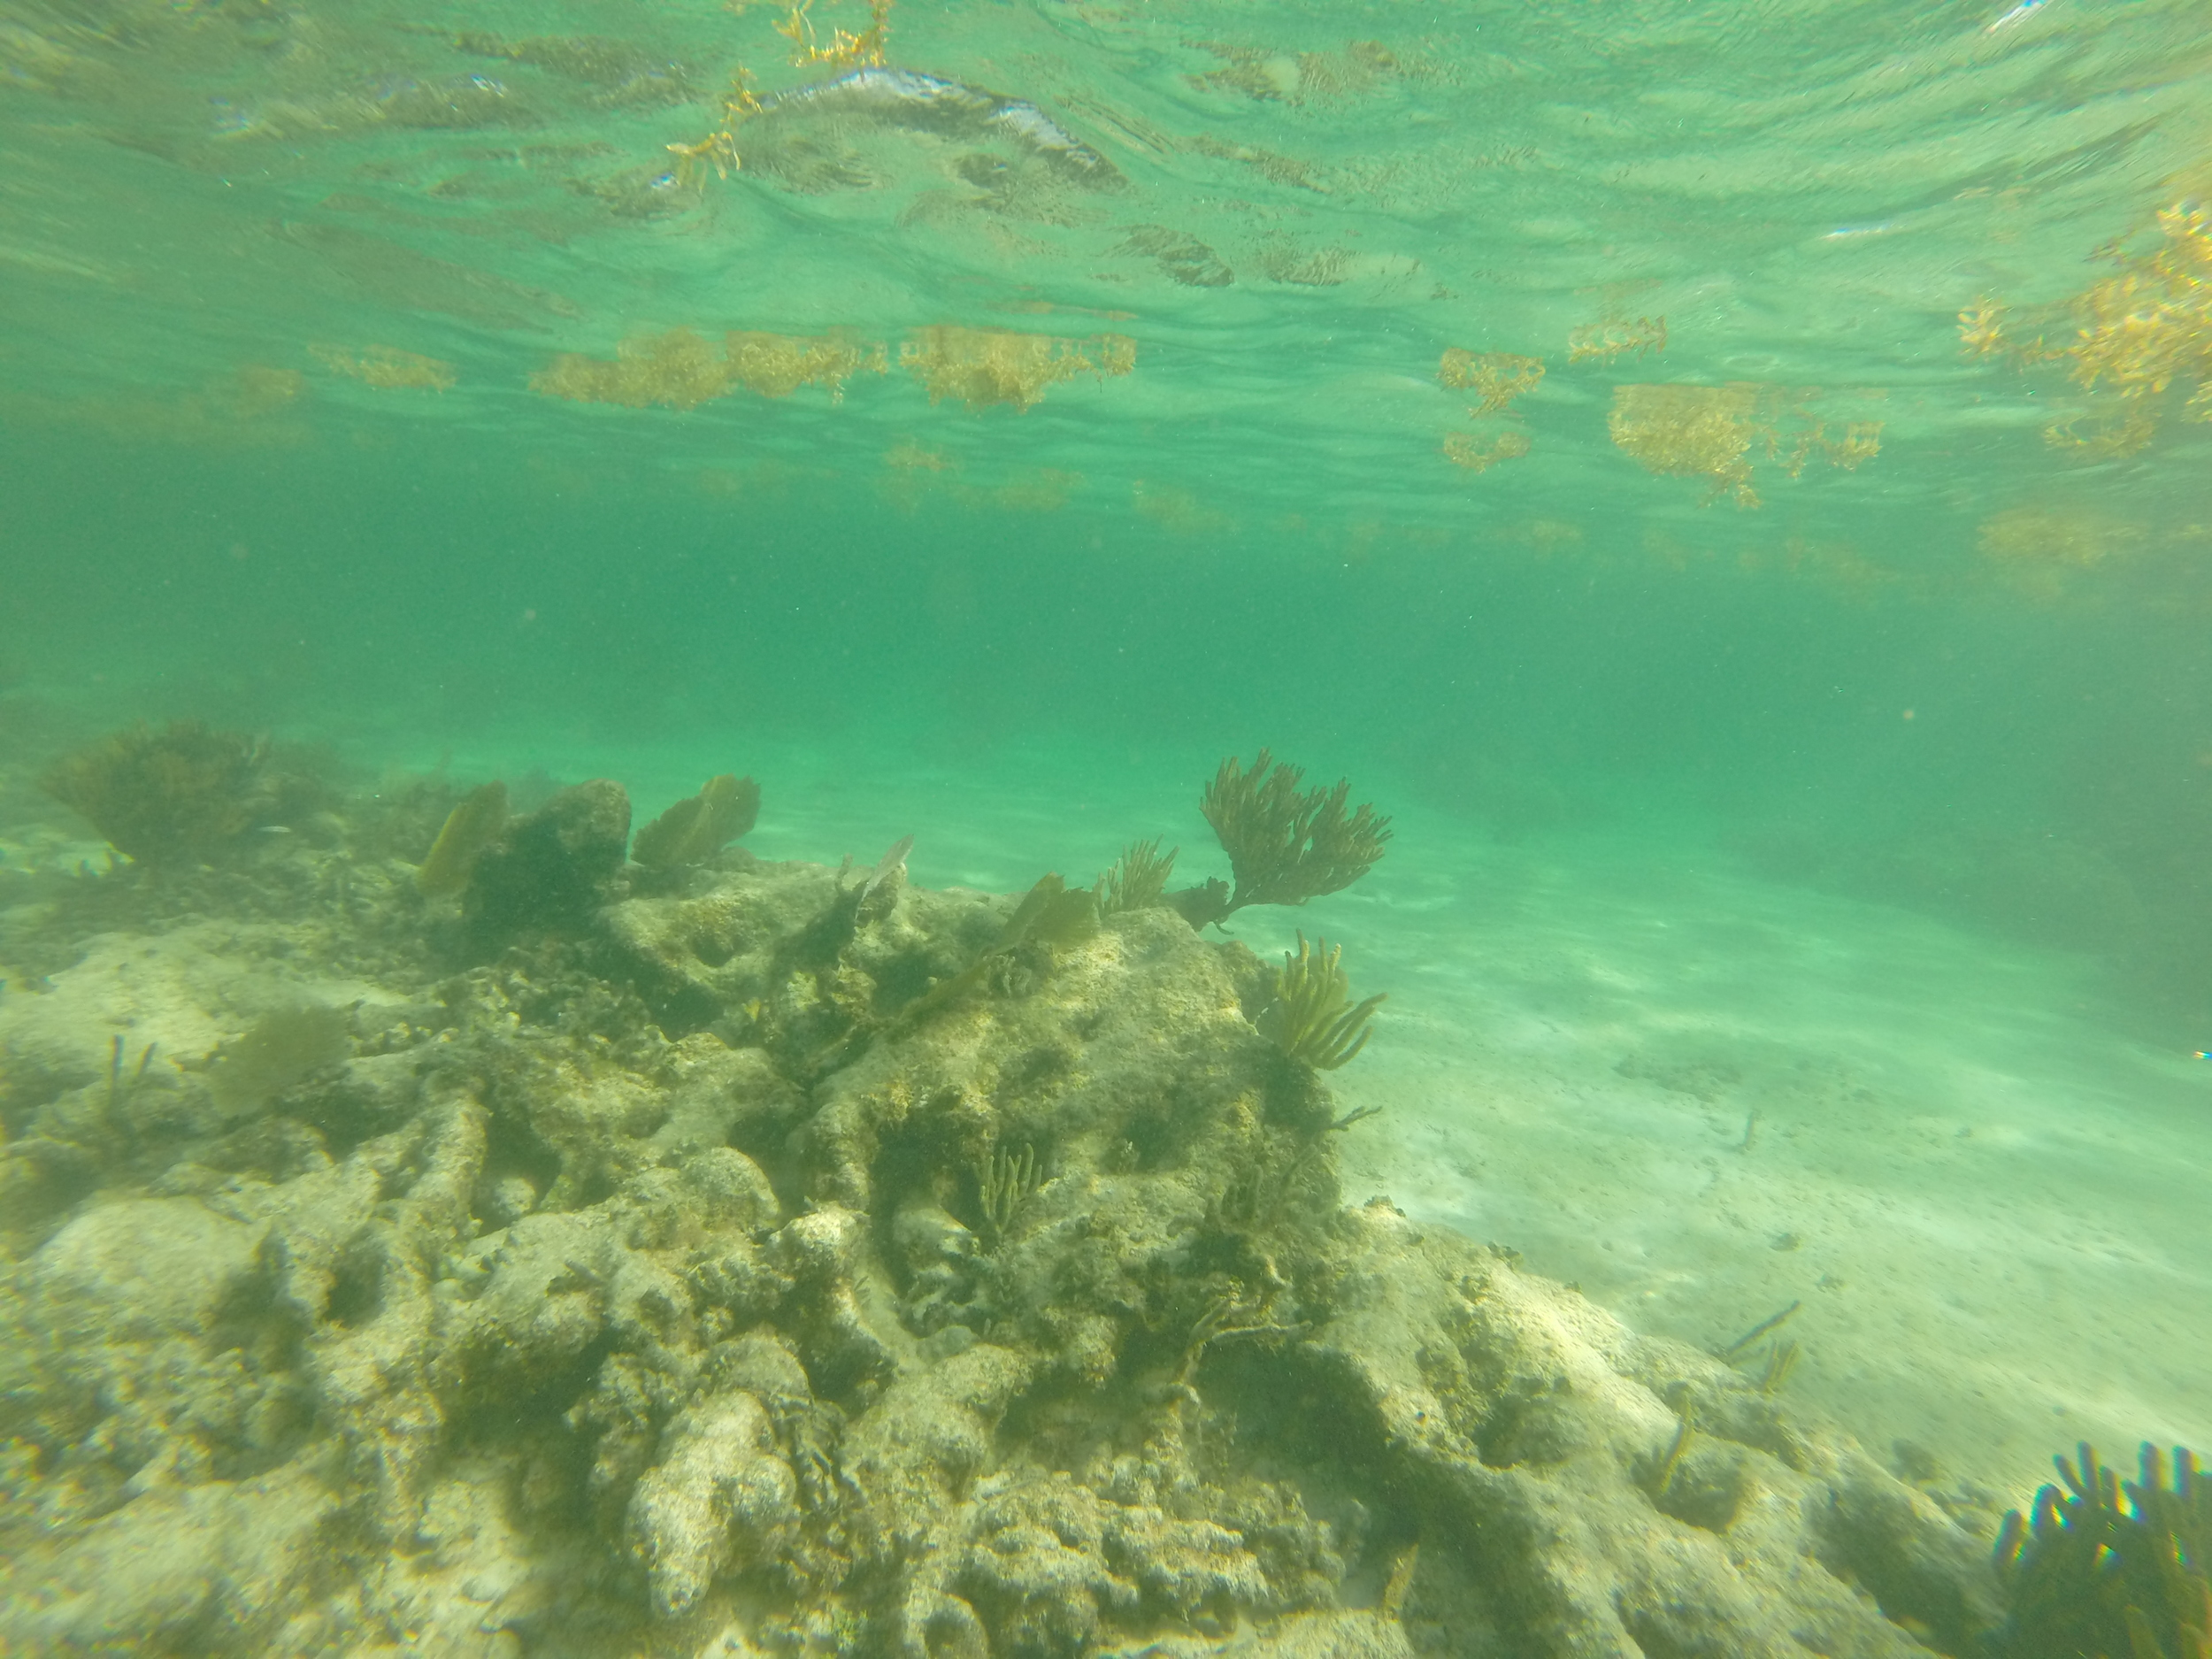 Underwater photo of a reef in Akumal, Mexico.